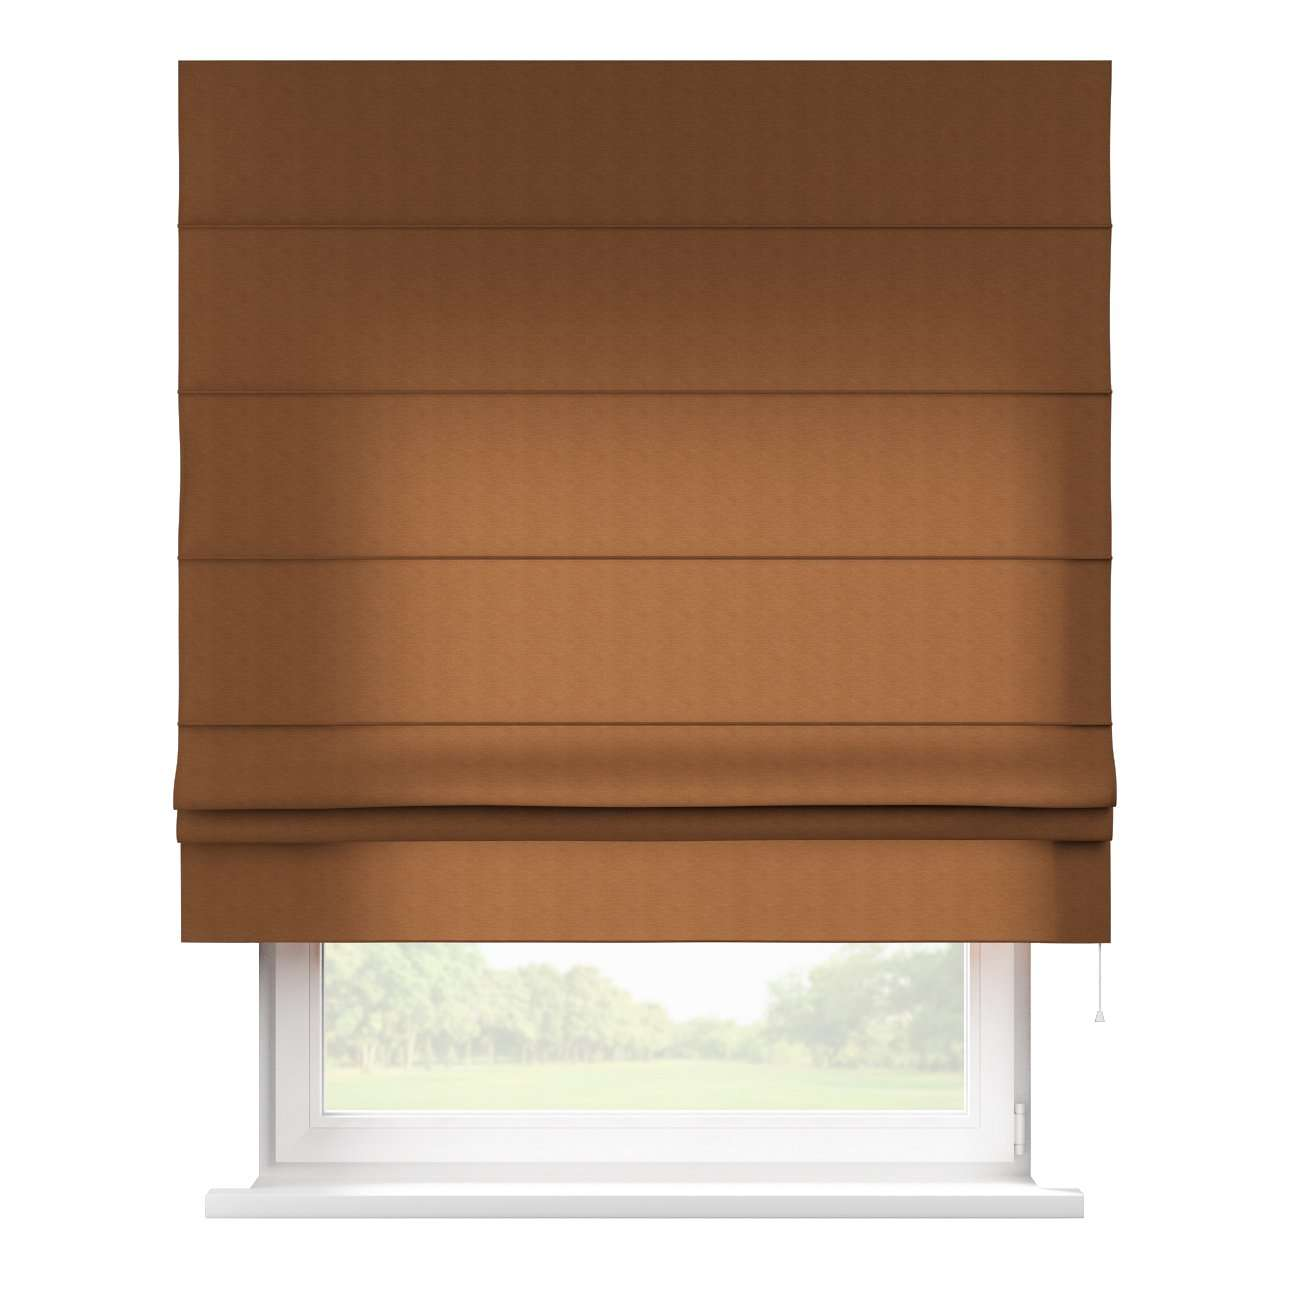 Padva roman blind  80 x 170 cm (31.5 x 67 inch) in collection Jupiter, fabric: 127-88